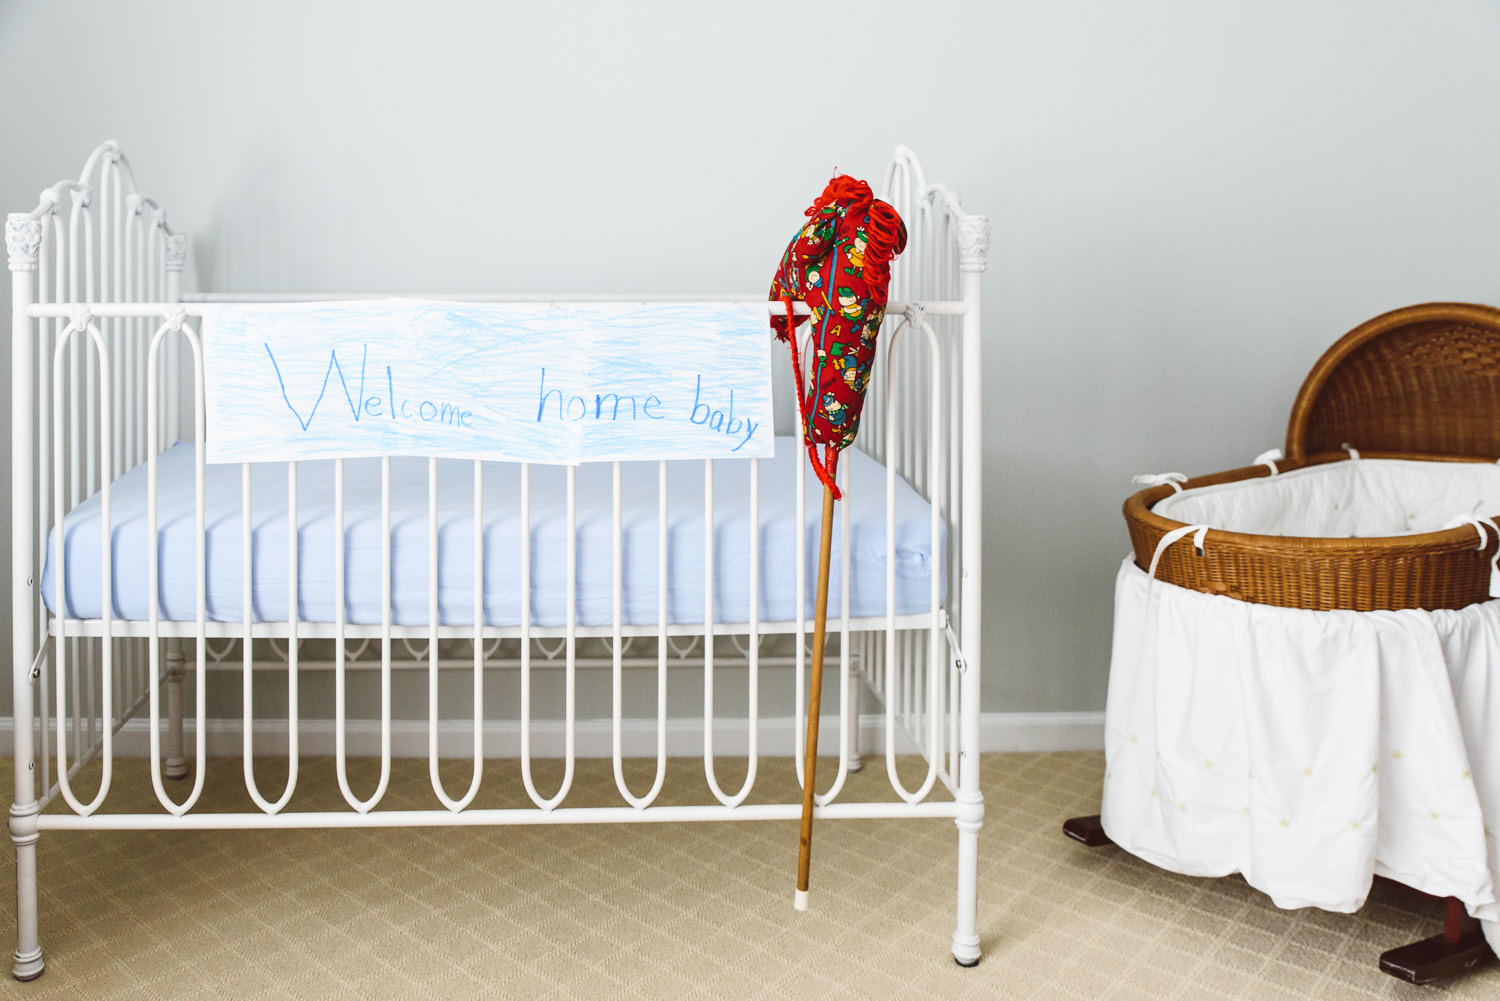 A welcome home baby sign hangs on the side of a crib.